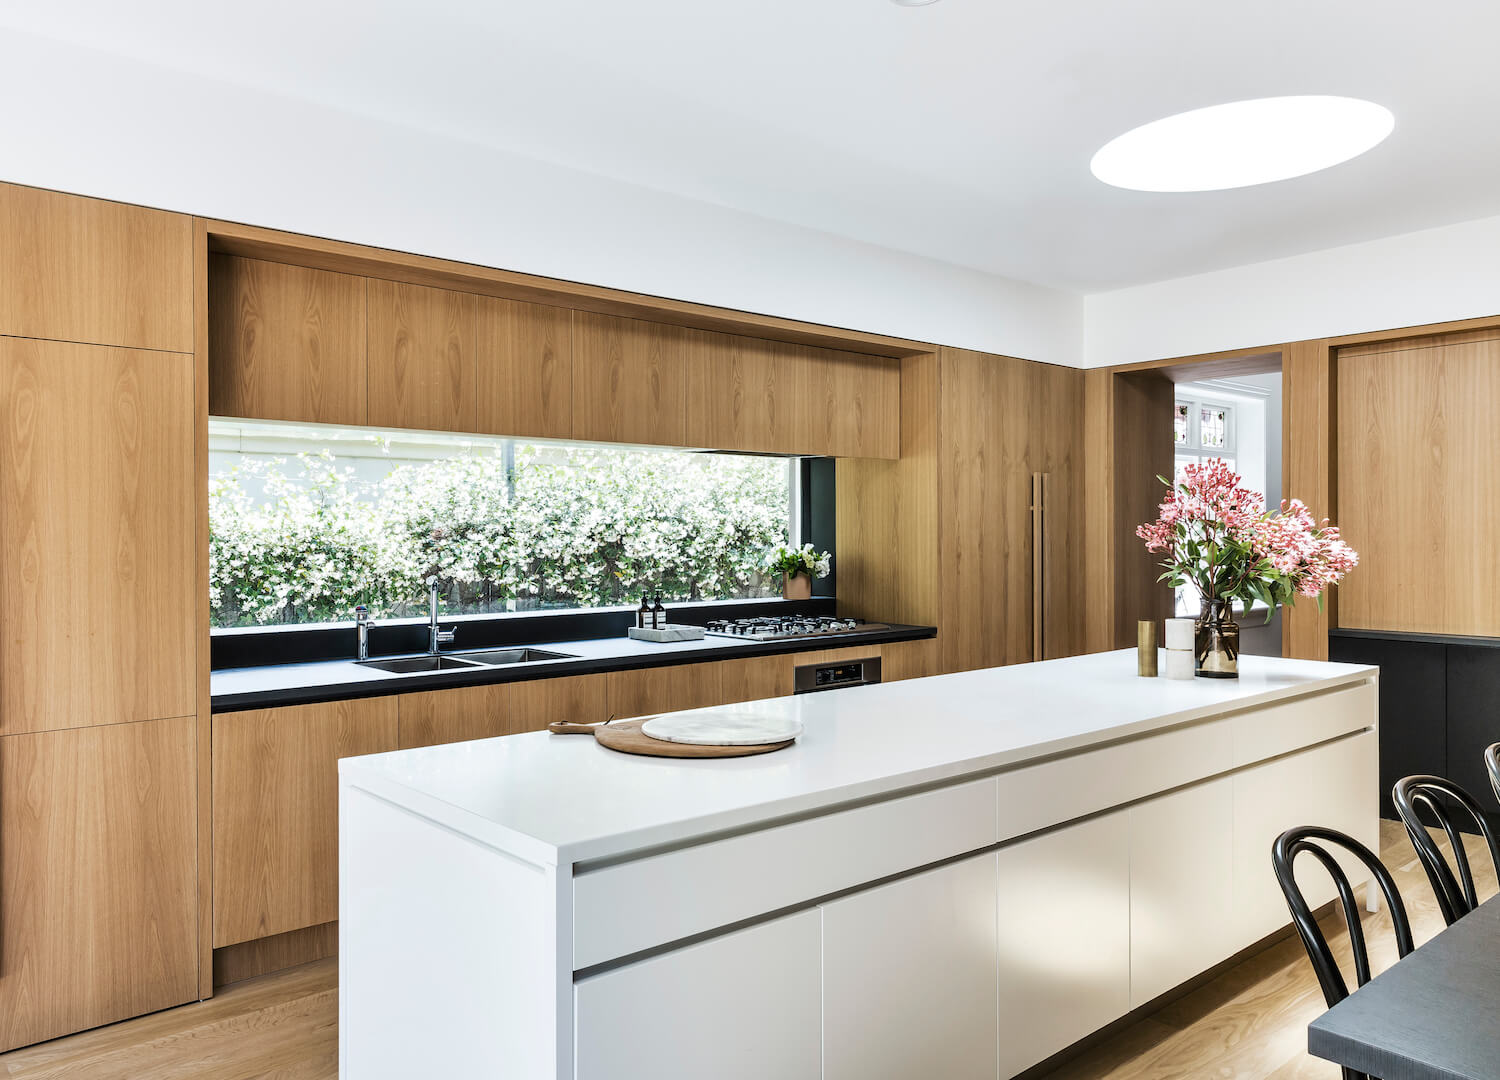 est living australian interiors bellevue hill house madeleine blanchfield architects 3